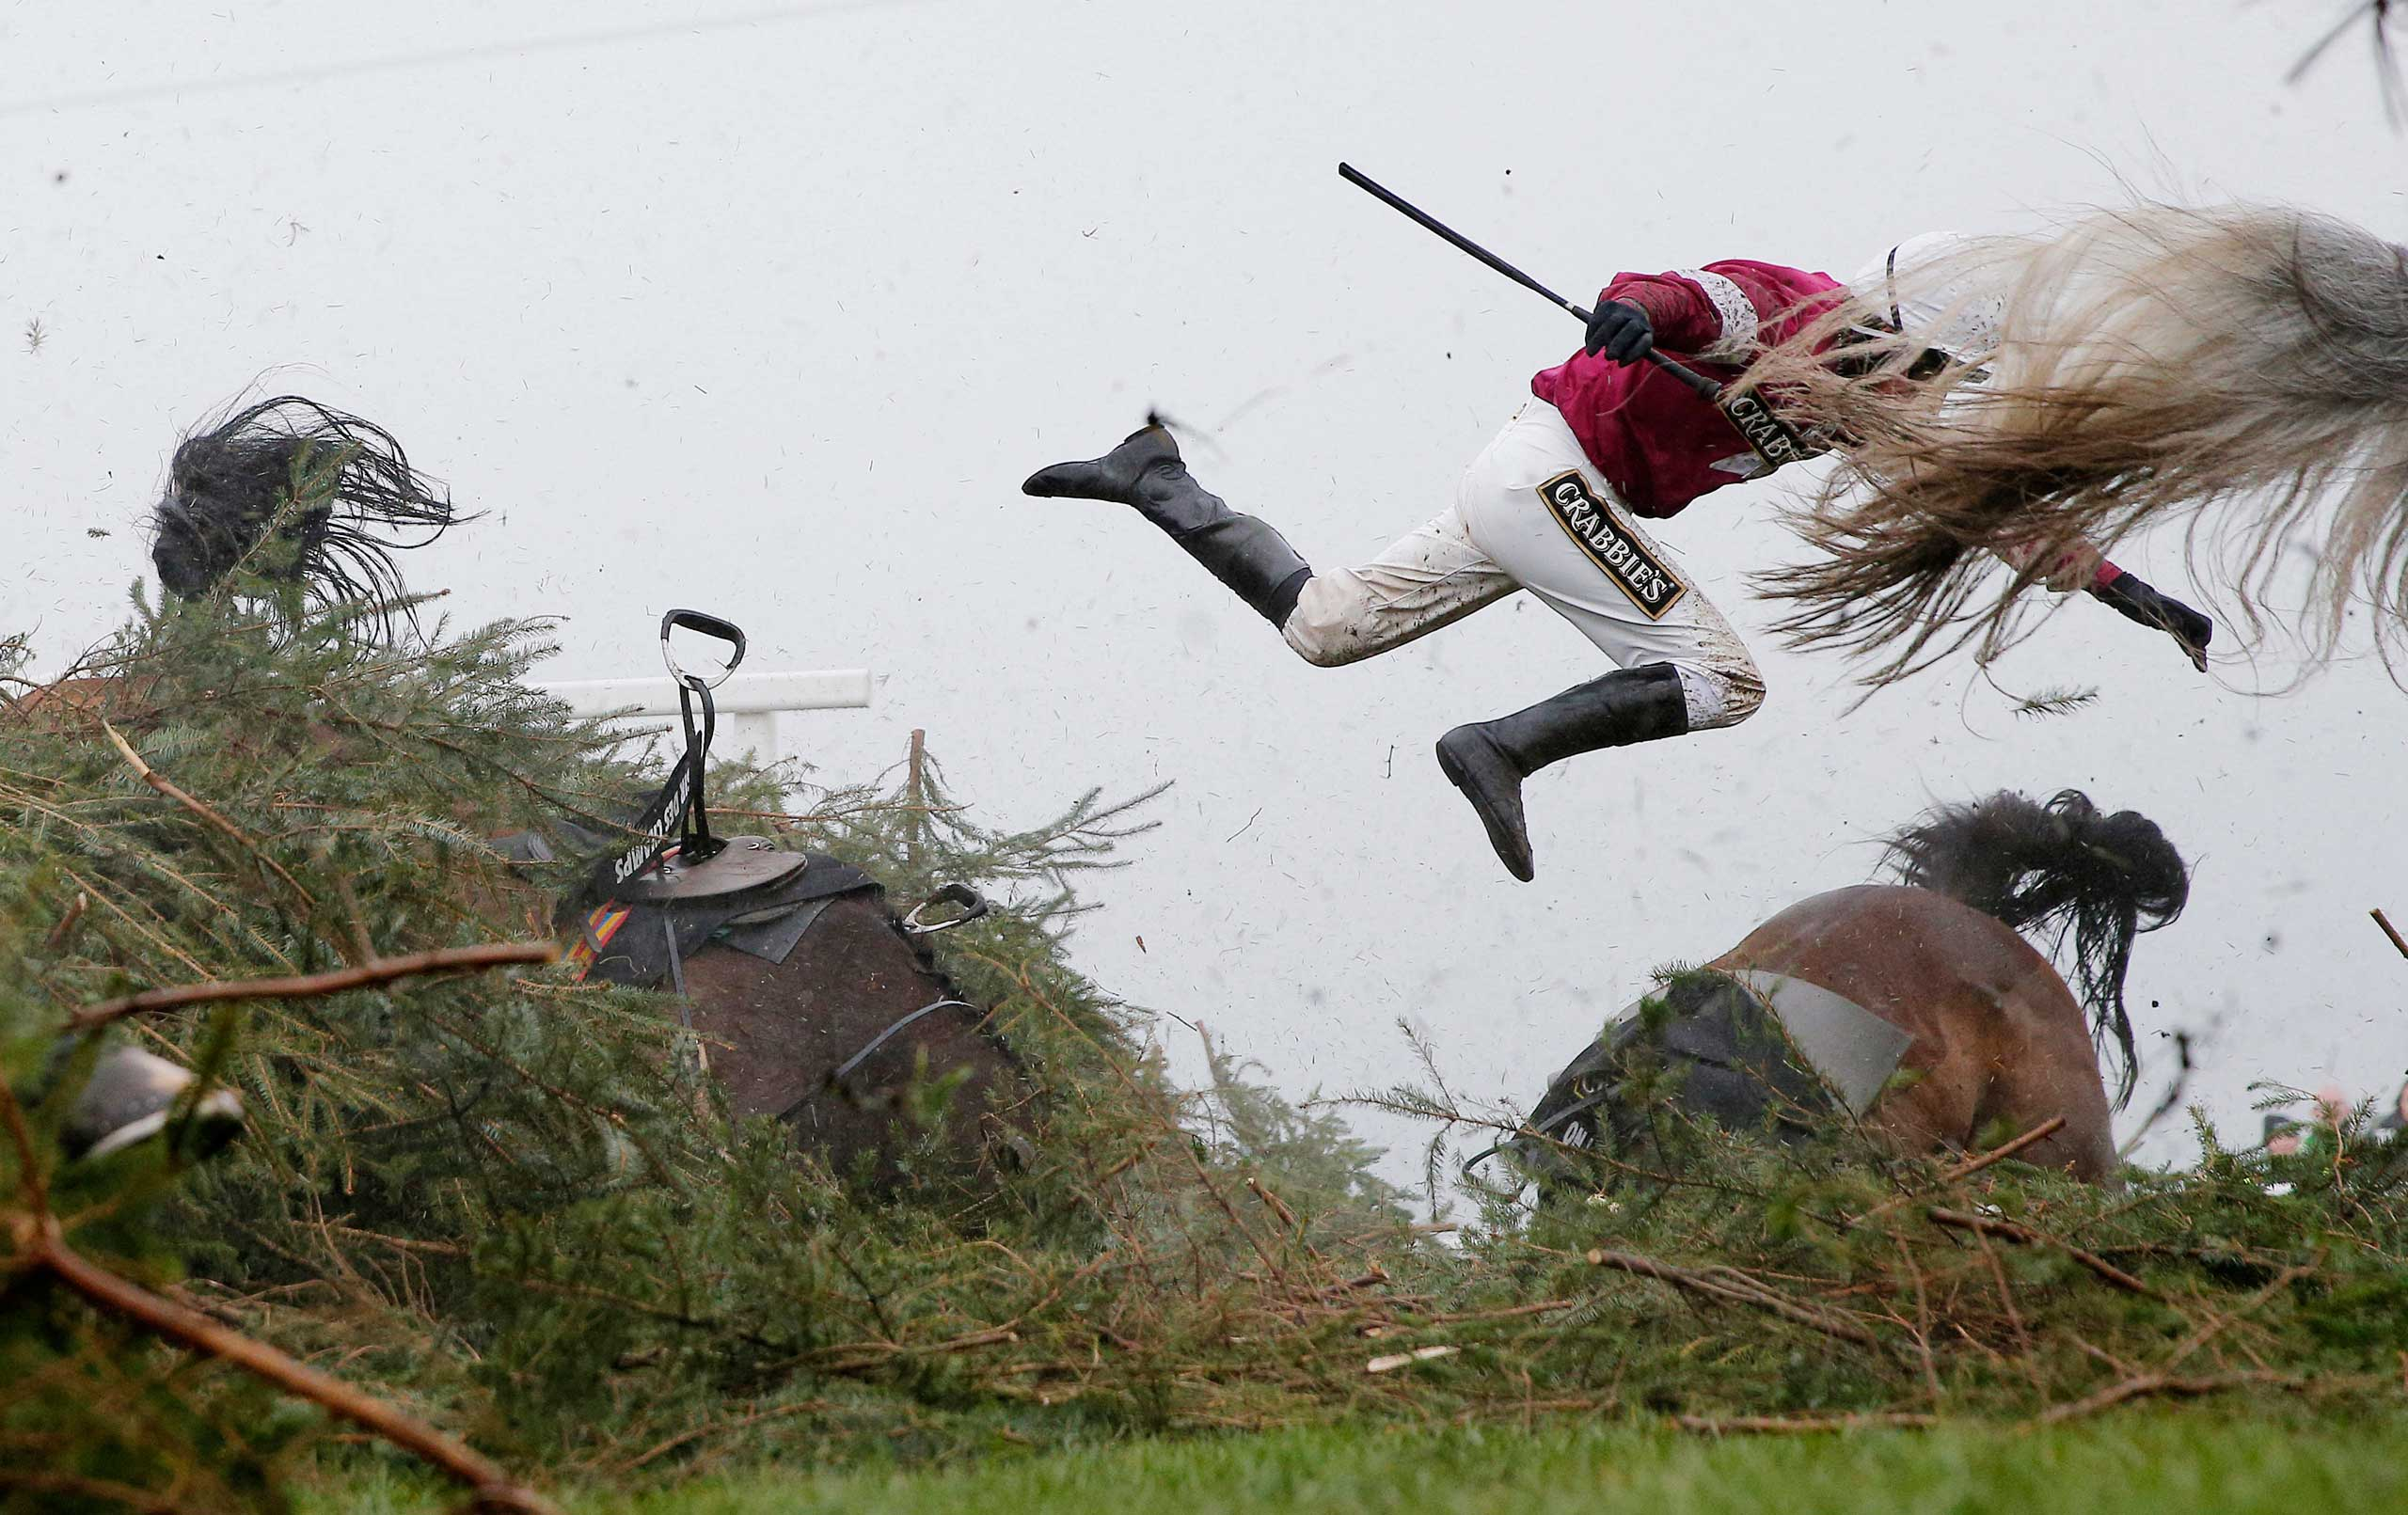 Jockey Nina Carberry flies off her horse Sir Des Champs as they fall at The Chair fence during the Grand National steeplechase during day three of the Grand National Meeting at Aintree Racecourse on April 9, 2016 in Liverpool, England.